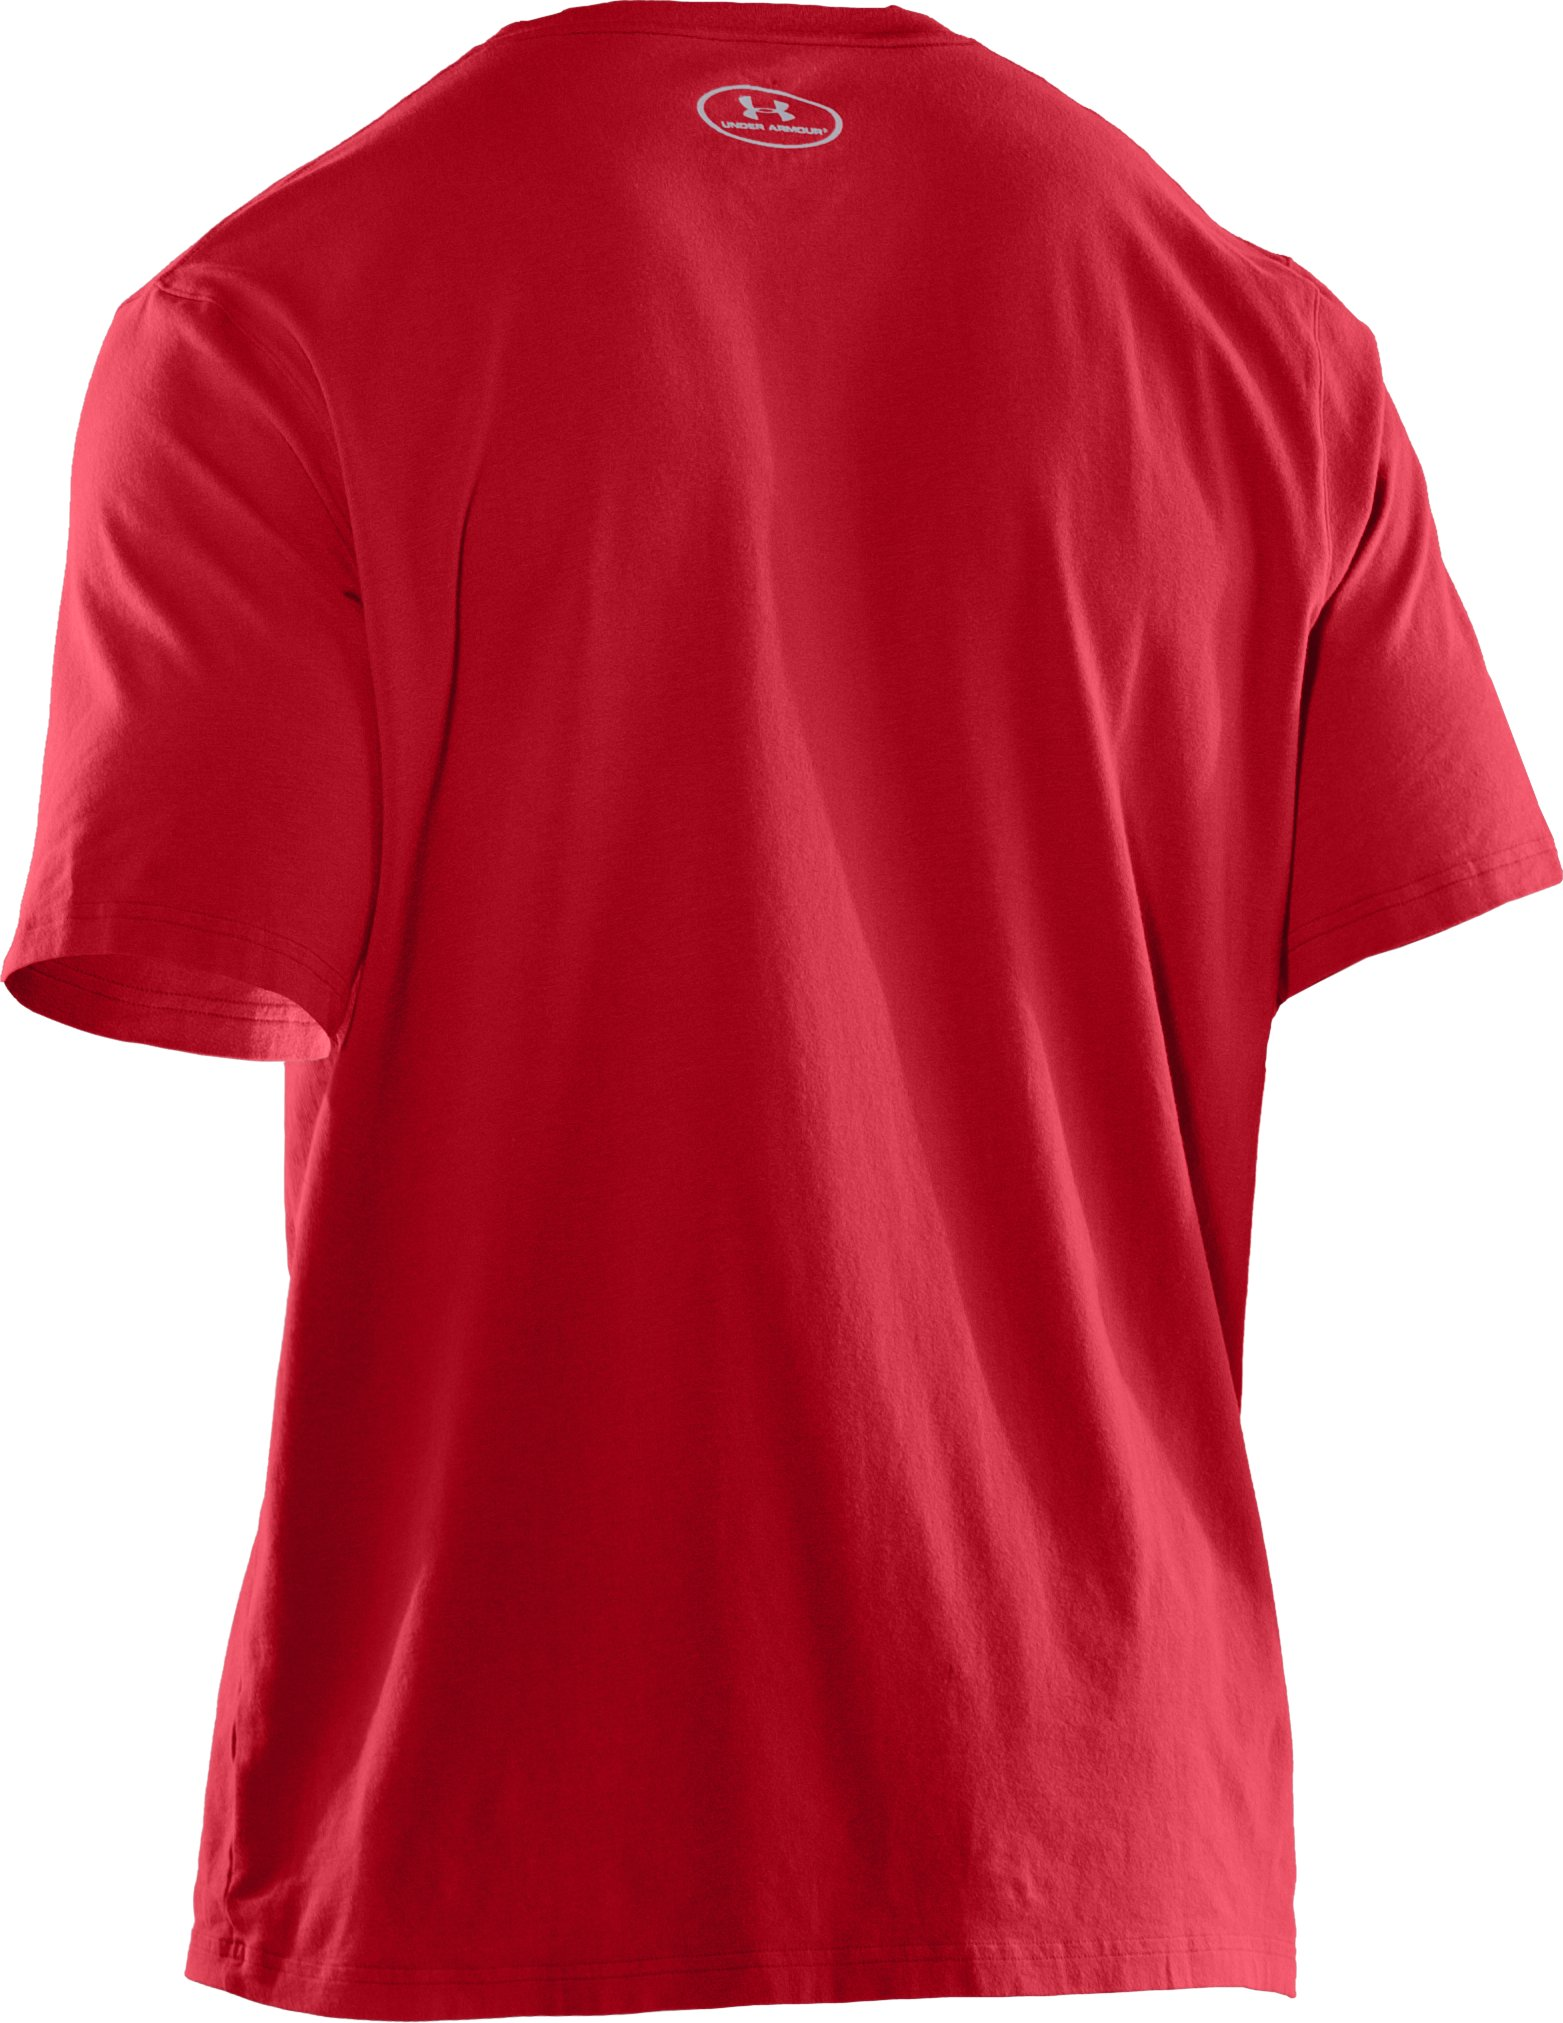 Men's Charged Cotton® T-Shirt, Red, undefined